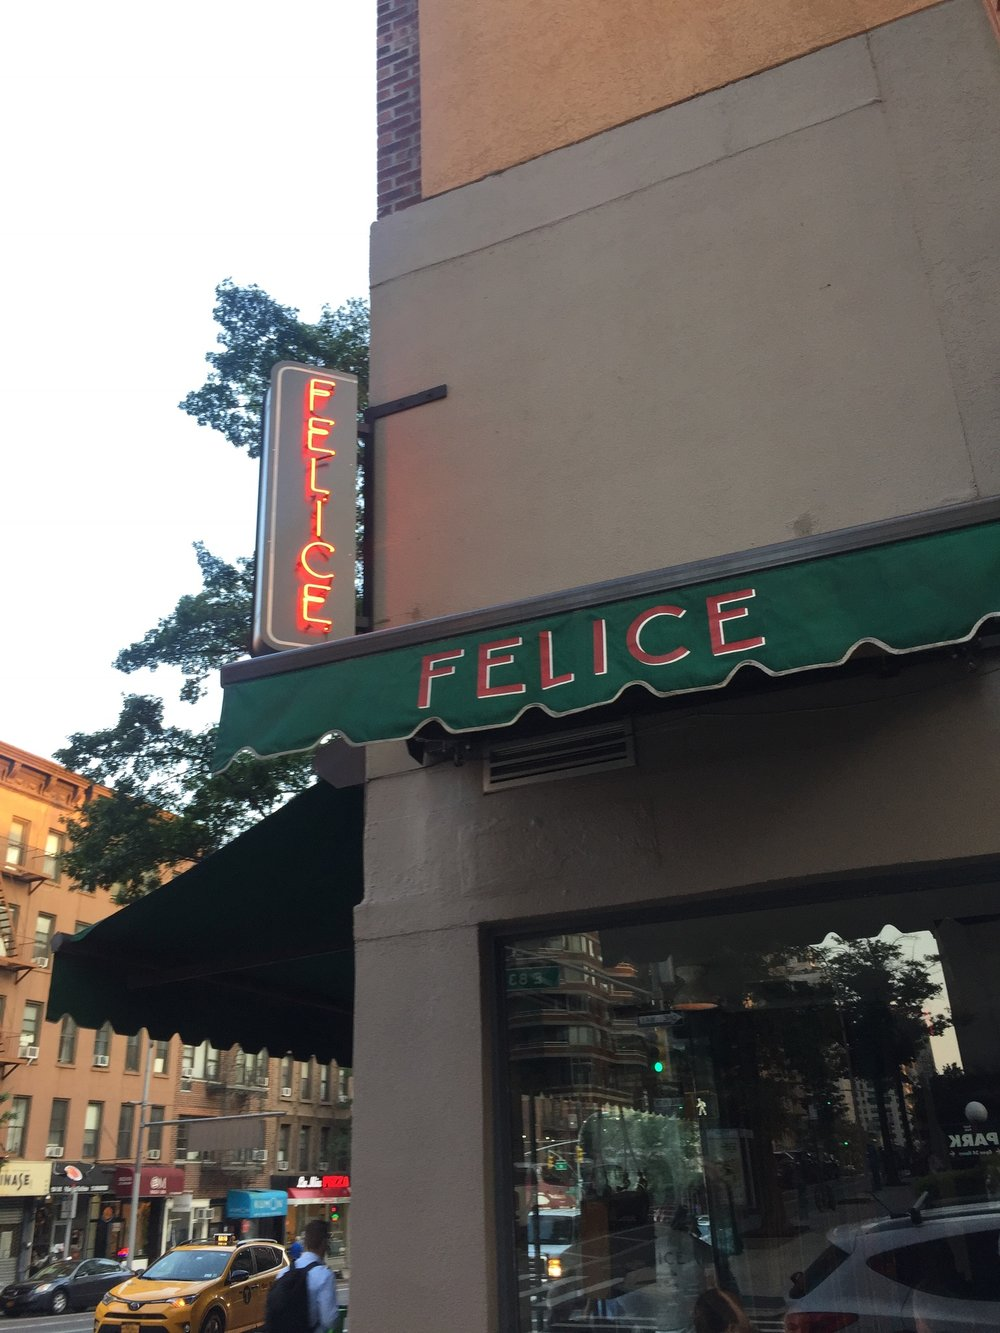 And then to Felice for dinner. SO GOOD.